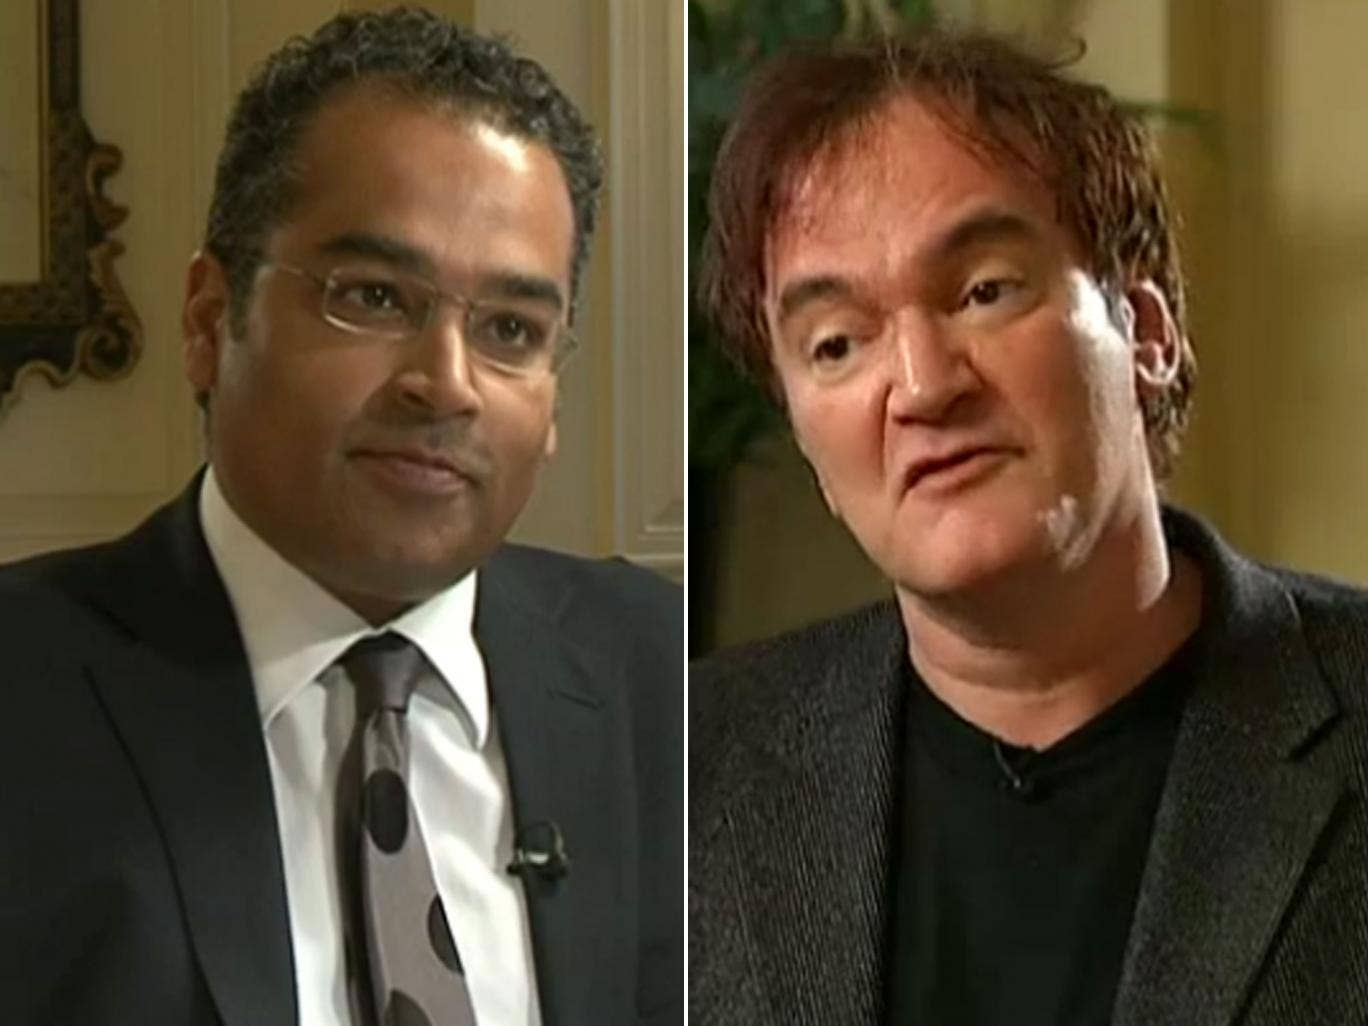 uentin Tarantino refuses to discuss any link between movie violence and real life violence during a heated interview with Krishnan Guru-Murthy about his latest film Django Unchained